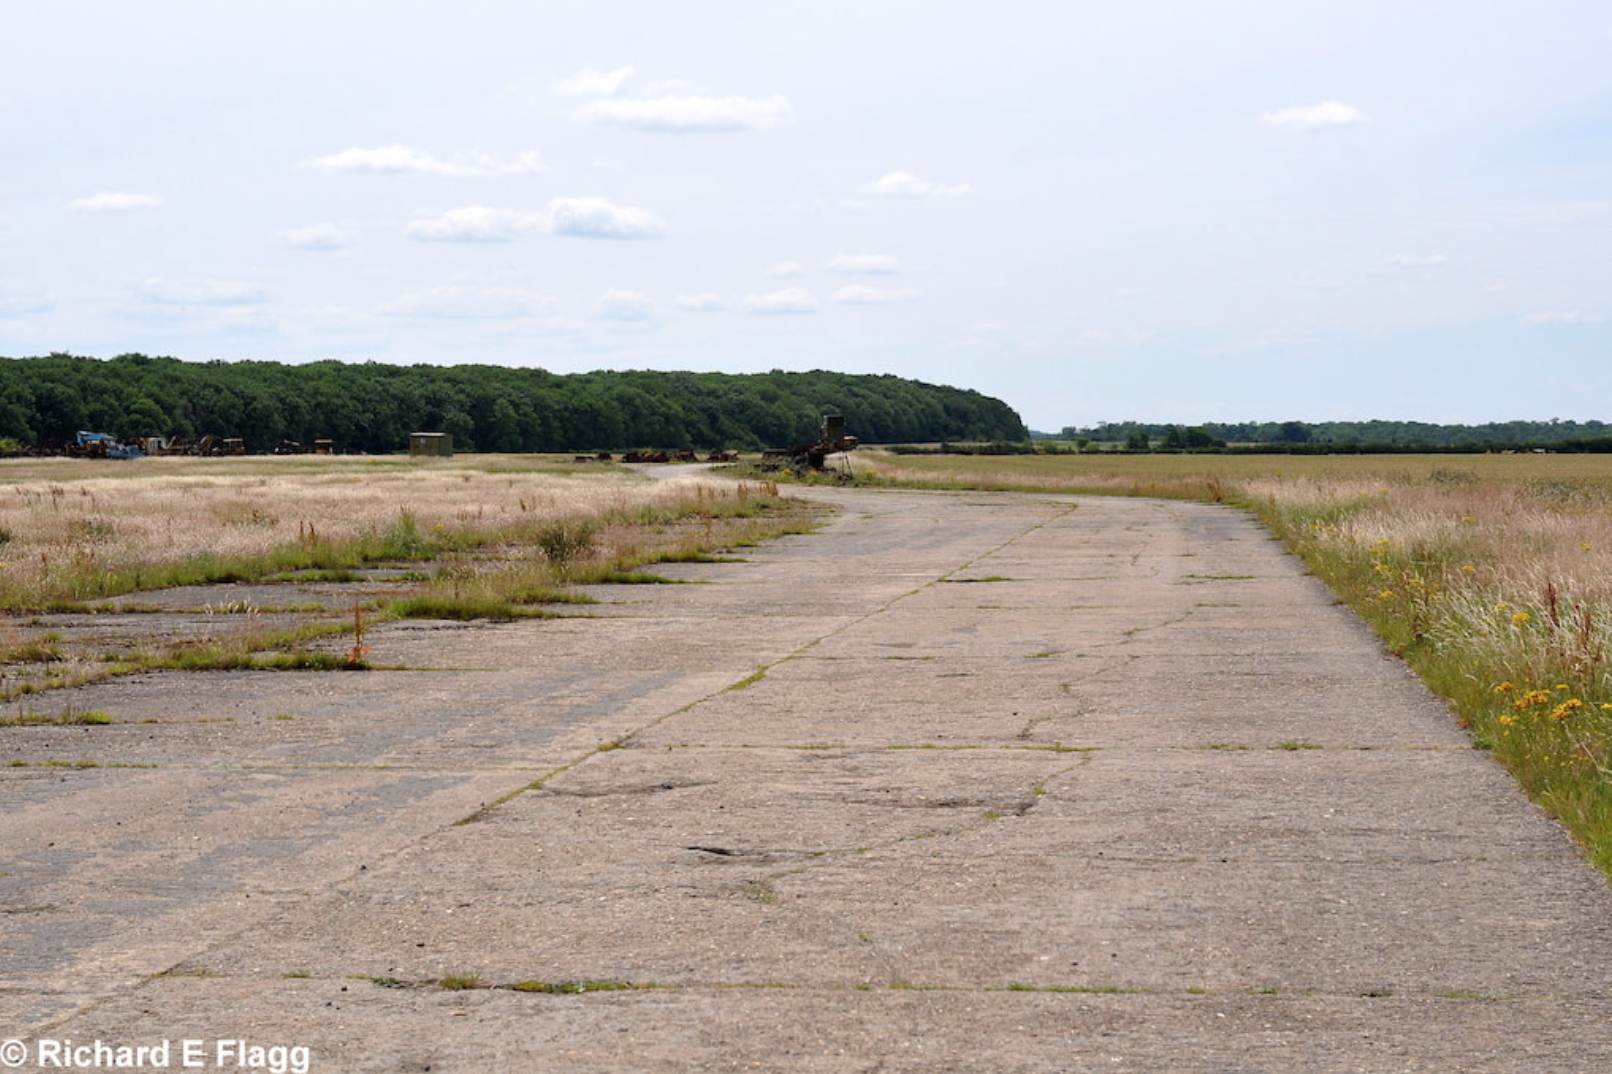 001Taxiway at the east of the airfield. Looking south 2 - 14 July 2011.png